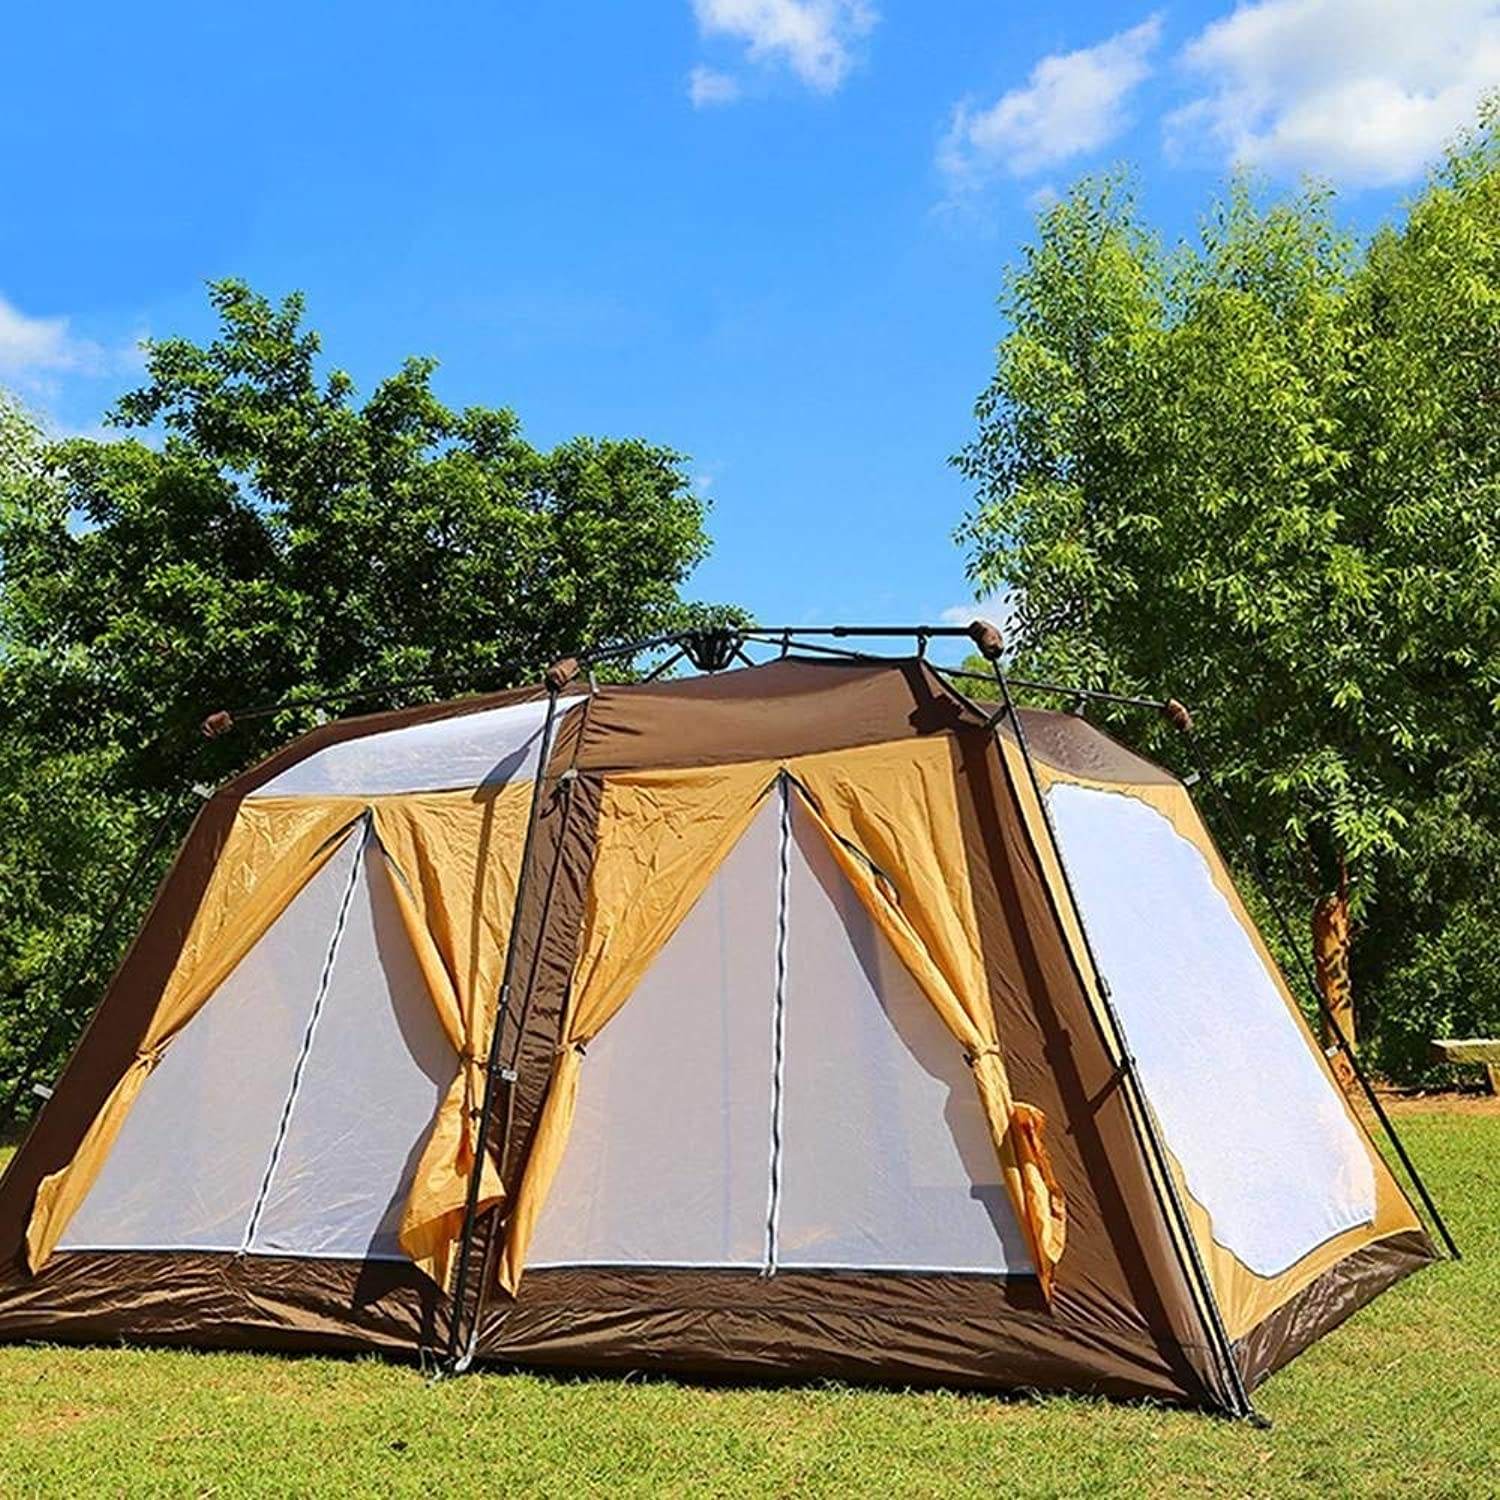 Outdoor Camping Tent 68 People Double Layer Ultra Light Portable Folding Sunscreen Waterproof Family Friends Travel Beach Holiday Picnic Park Lawn Fishing